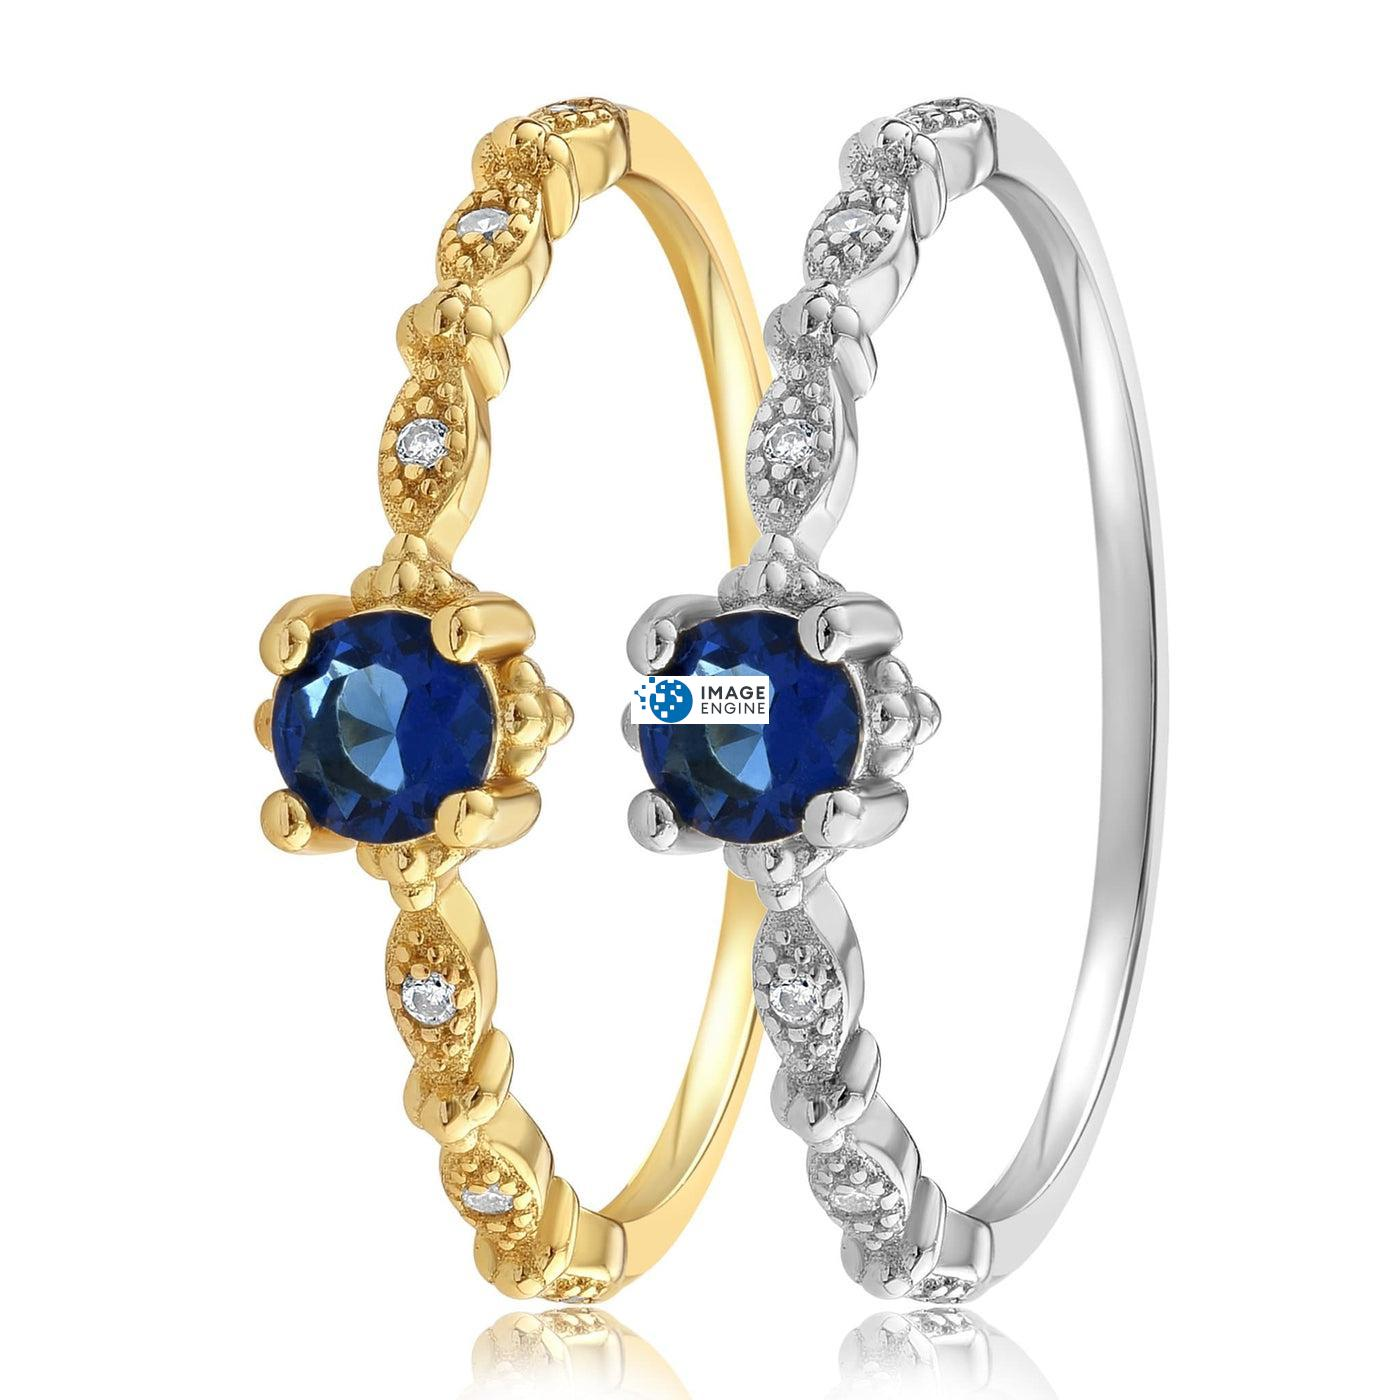 Garen Ring Blue Gemstone - Side by Side - 18K Yellow Gold and 925 Sterling Silver